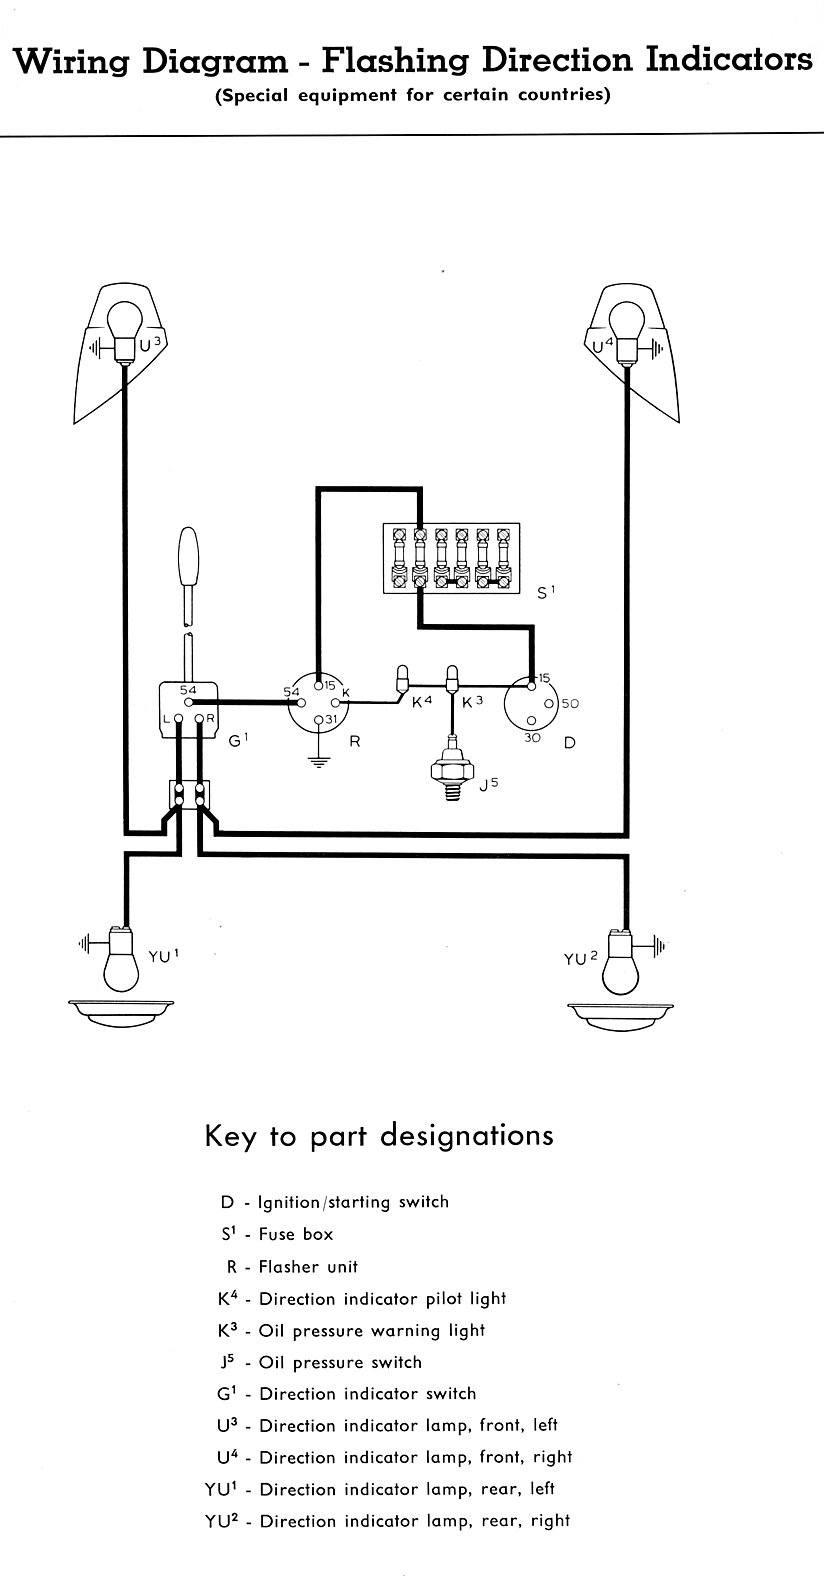 1974 Vw Bus Wiring Diagram Opinions About 73 Challenger Fuse Box Thesamba Com Type 2 Diagrams Rh 1975 1973